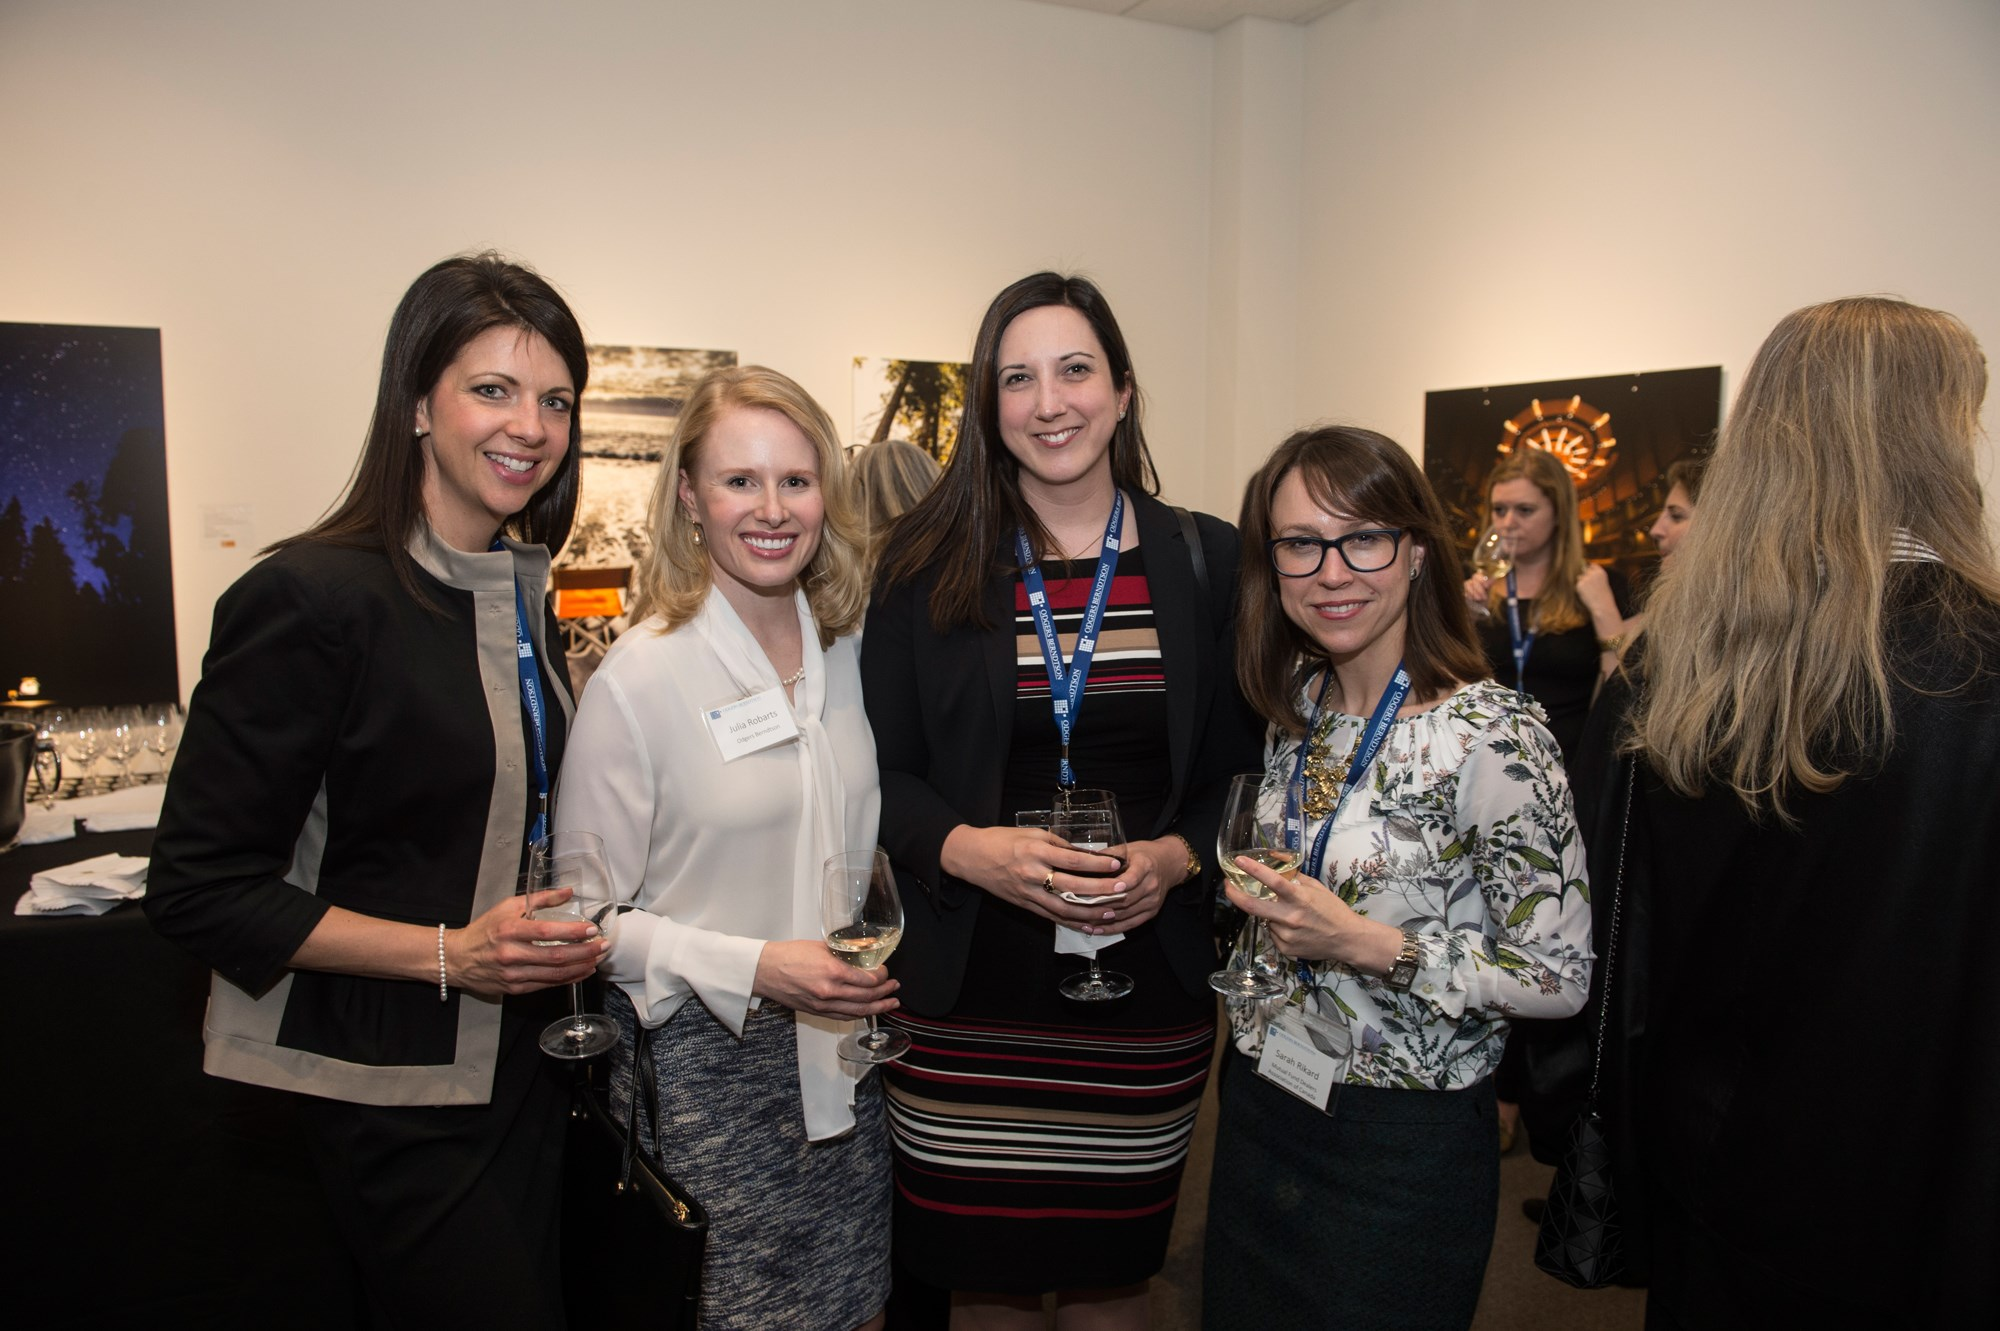 Heather Eldebs from RBC, Julia Robarts from Odgers Berndtson, Vanessa Voakes from Stikeman Elliott LPP & Sarah Rickard from Mutual Fund Dealers Association of Canada